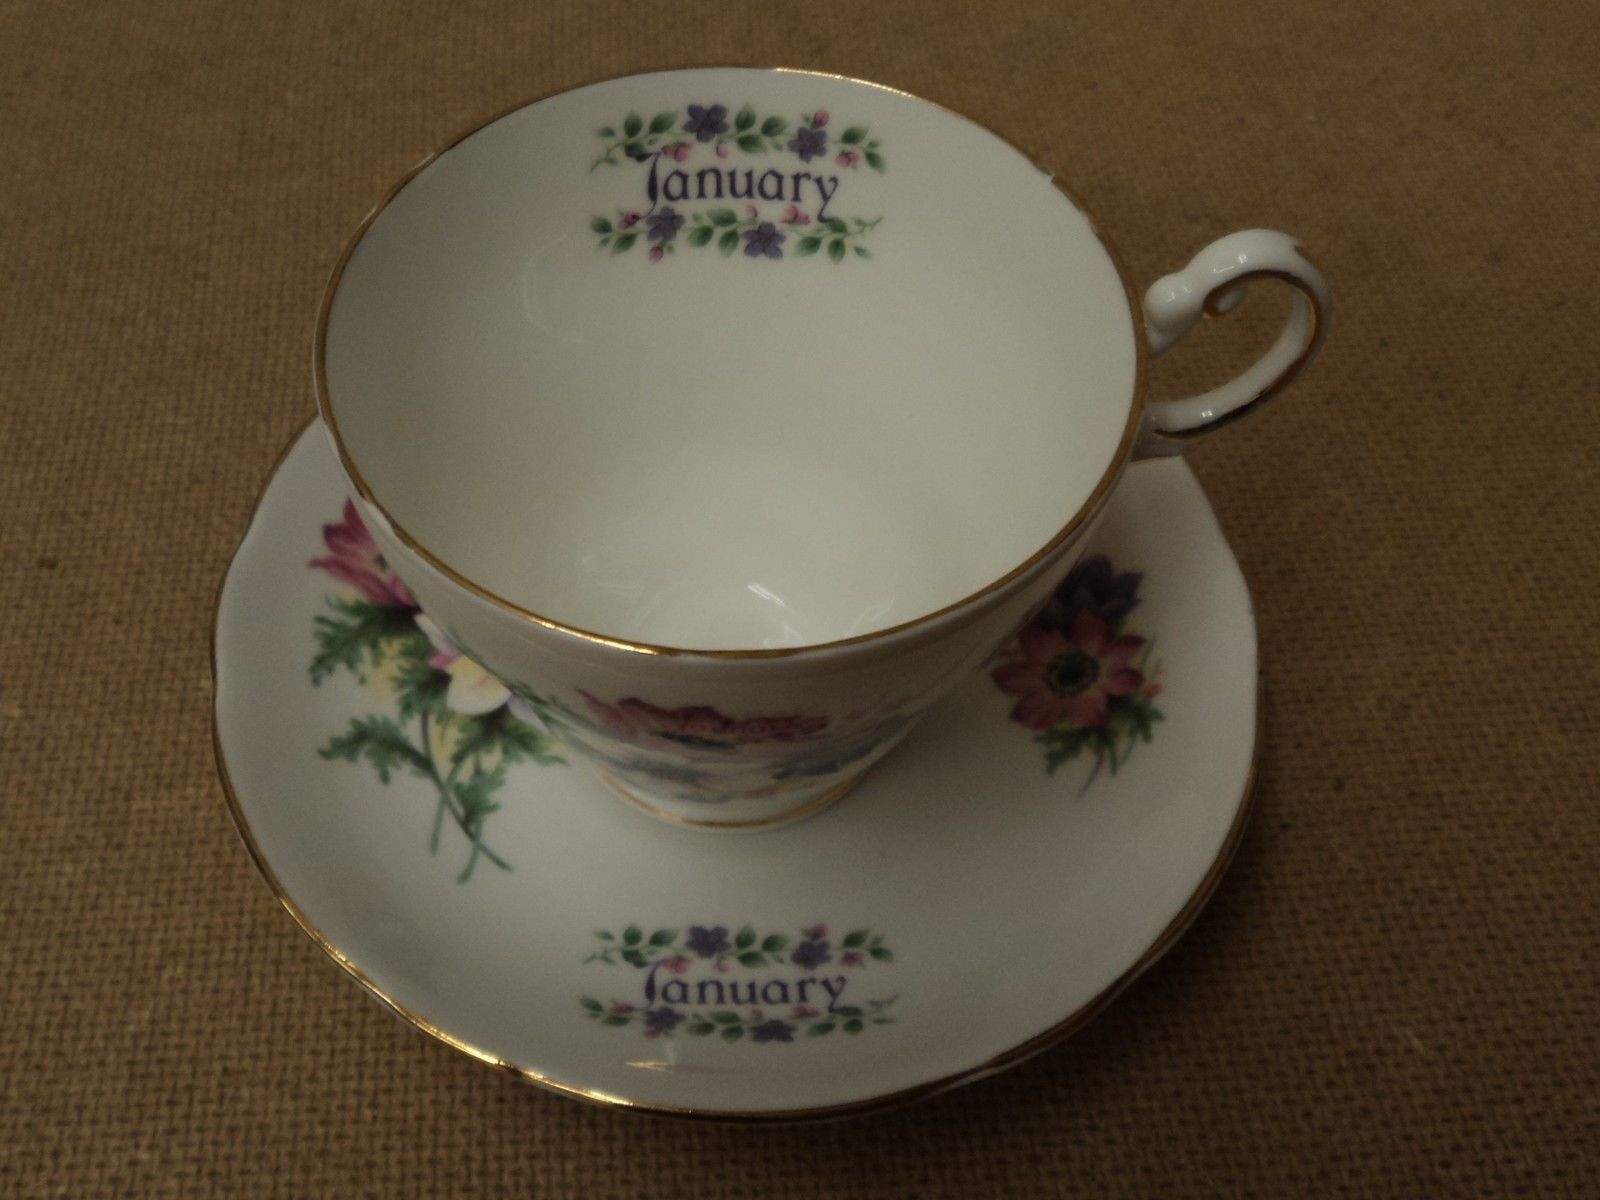 Heritage Regency Vintage Tea Cup & Saucer 5 3/8in Diameter x 3 1/2in H China